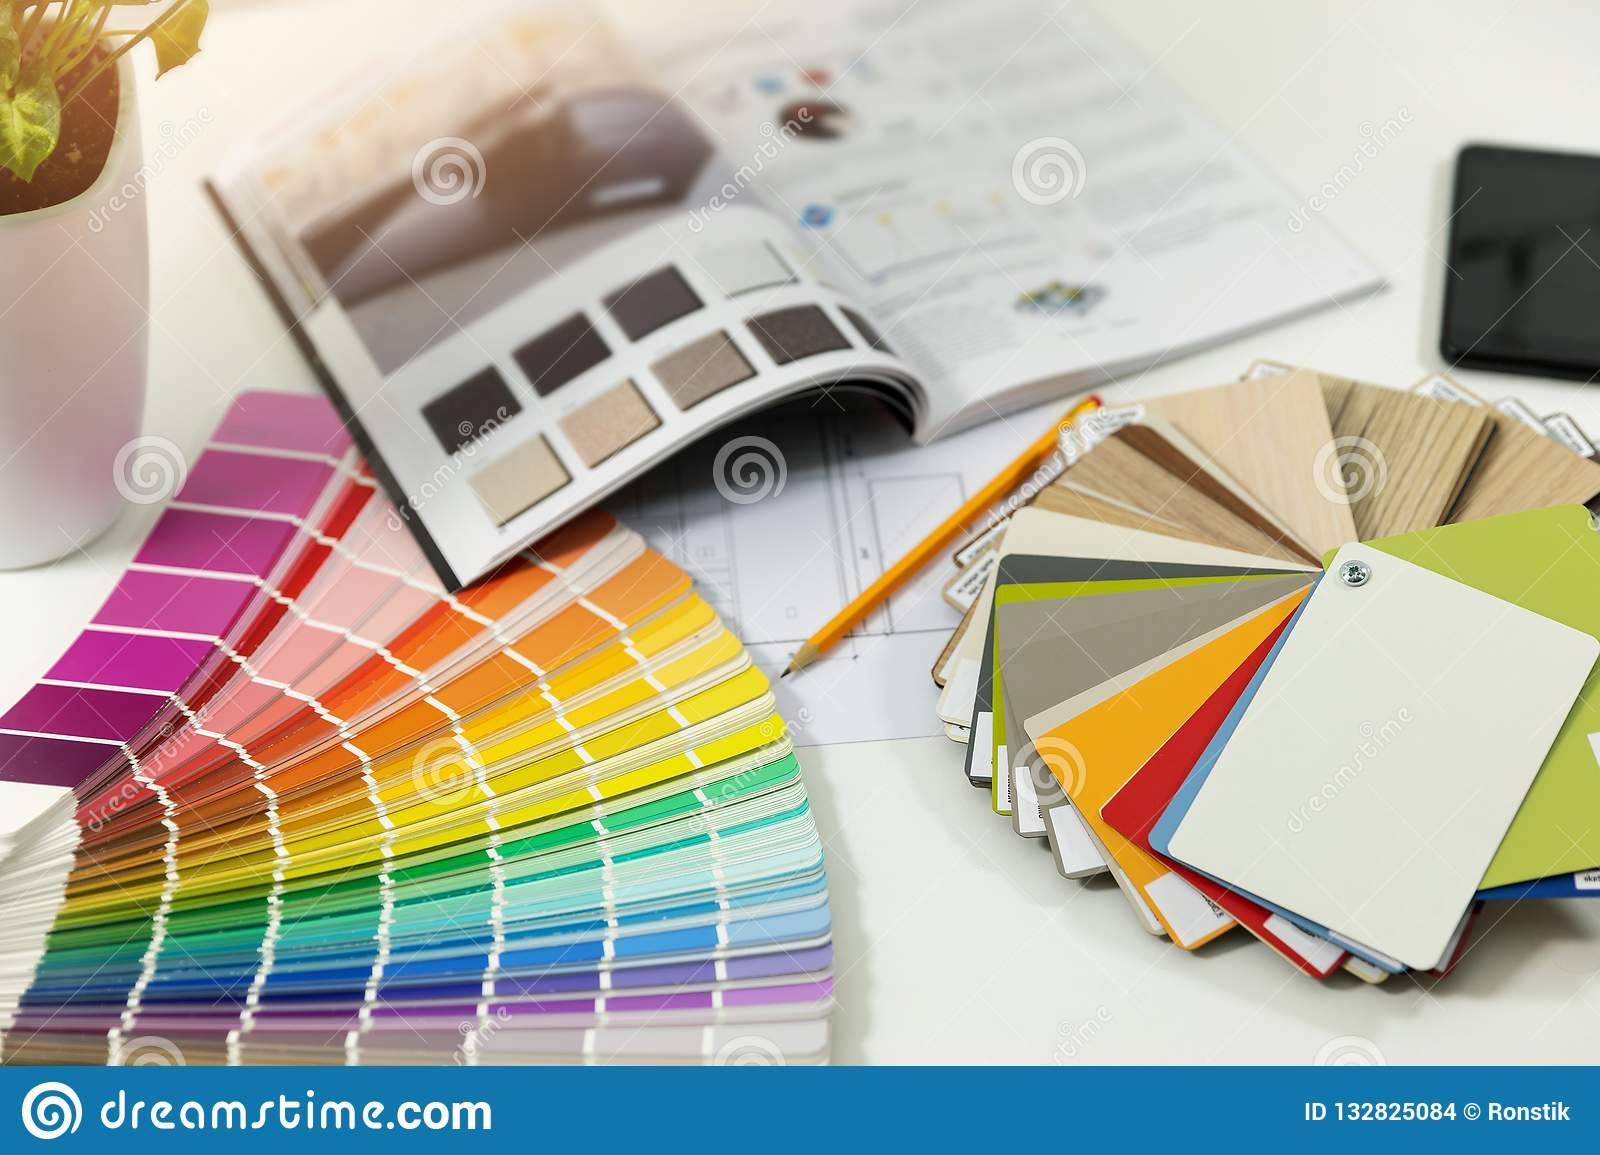 designer workplace - interior paint color and furniture samples